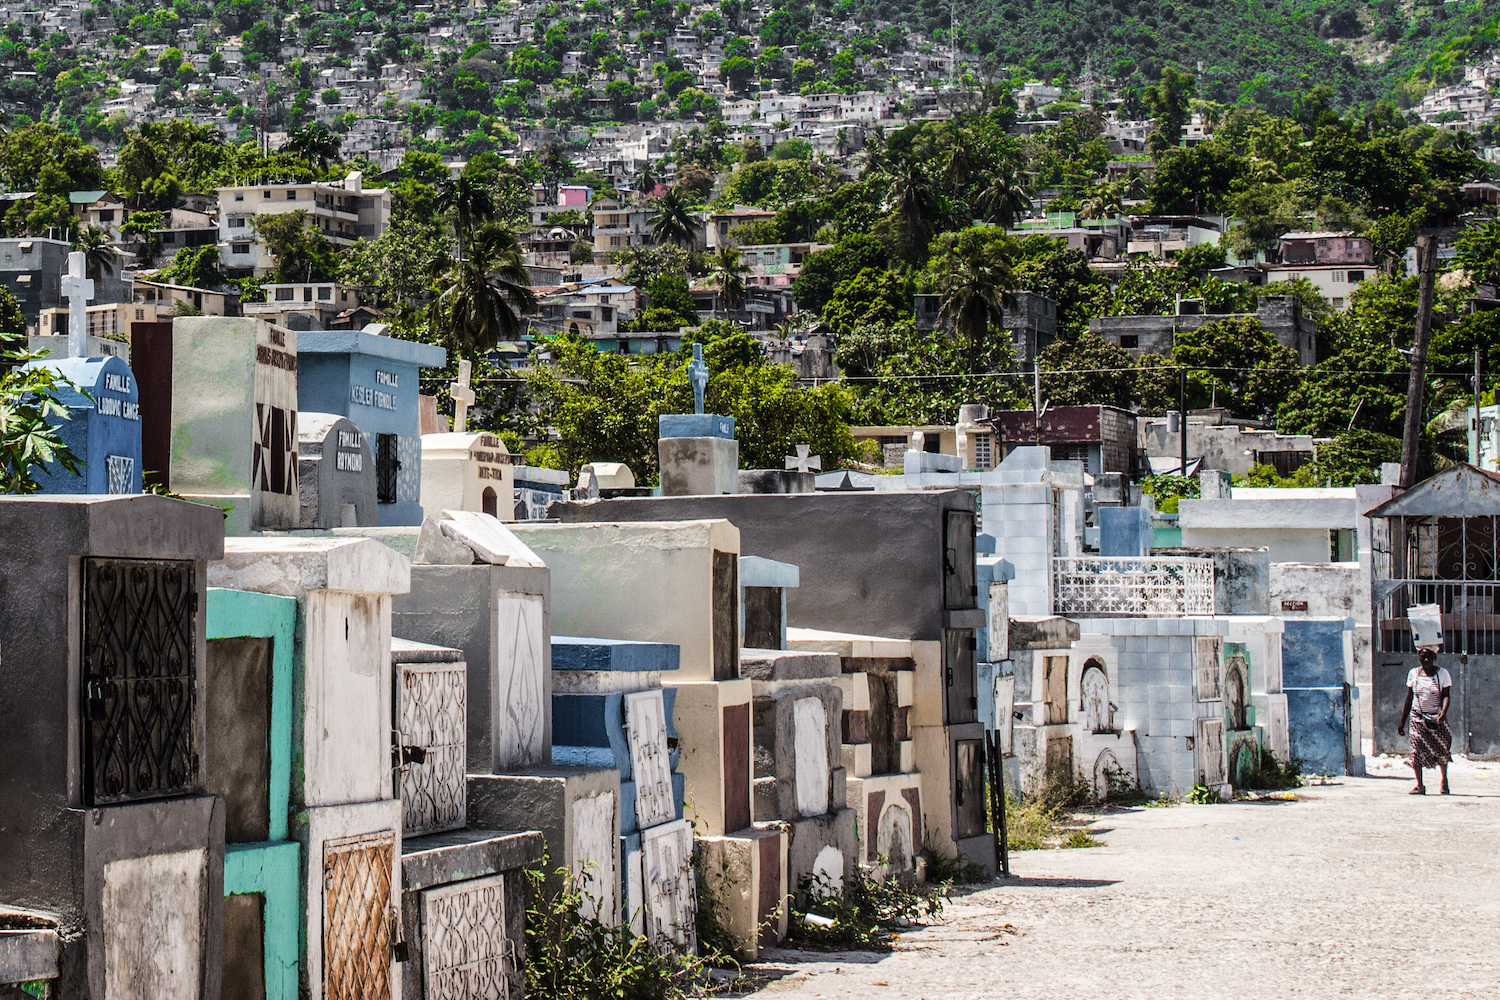 A woman walks between the rows of graves at Le Grand Cimetière. Port-au-Prince, Haiti. © Darmon Richter http://www.thebohemianblog.com/2015/04/haitian-vodou-port-au-prince.html